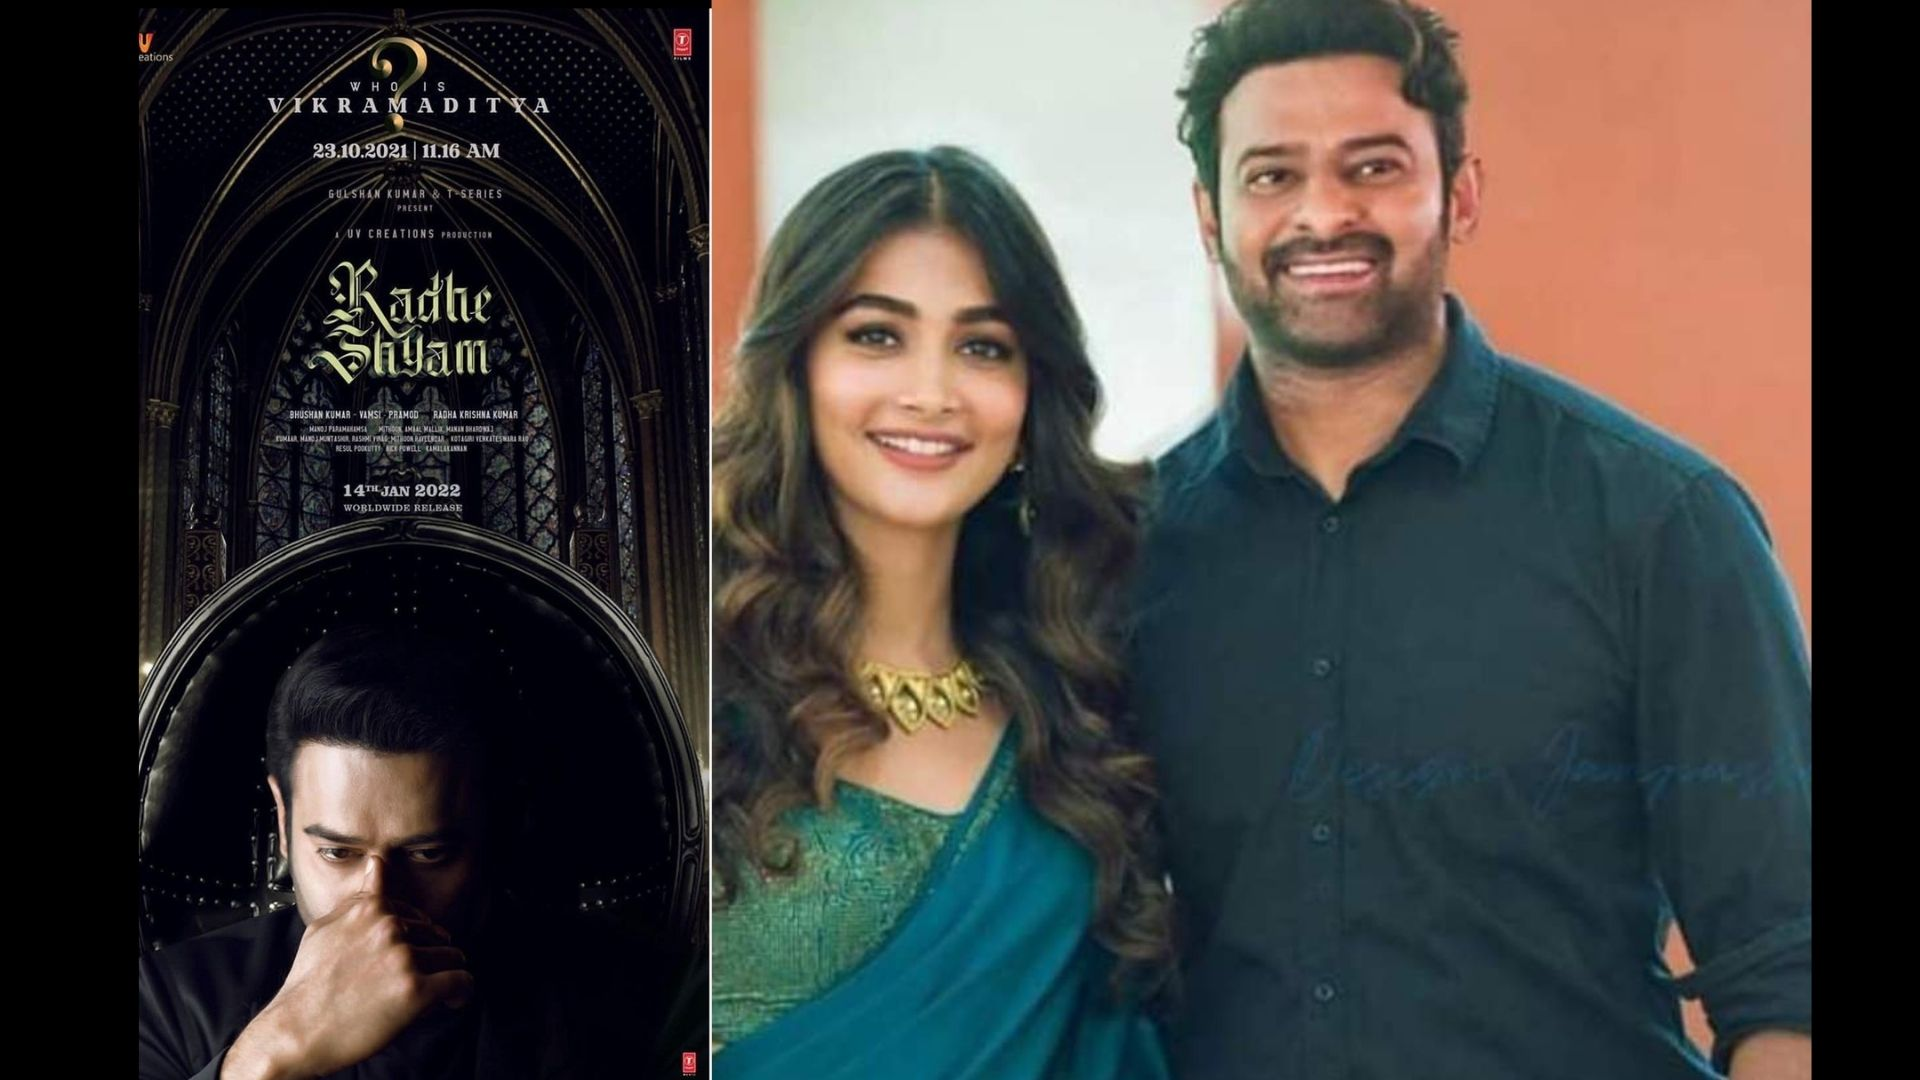 RadheShyam: Makers Share A Brand New Poster Of Prabhas And Pooja Hegde Starrer; Teaser To Unfold On The Actor's Birthday